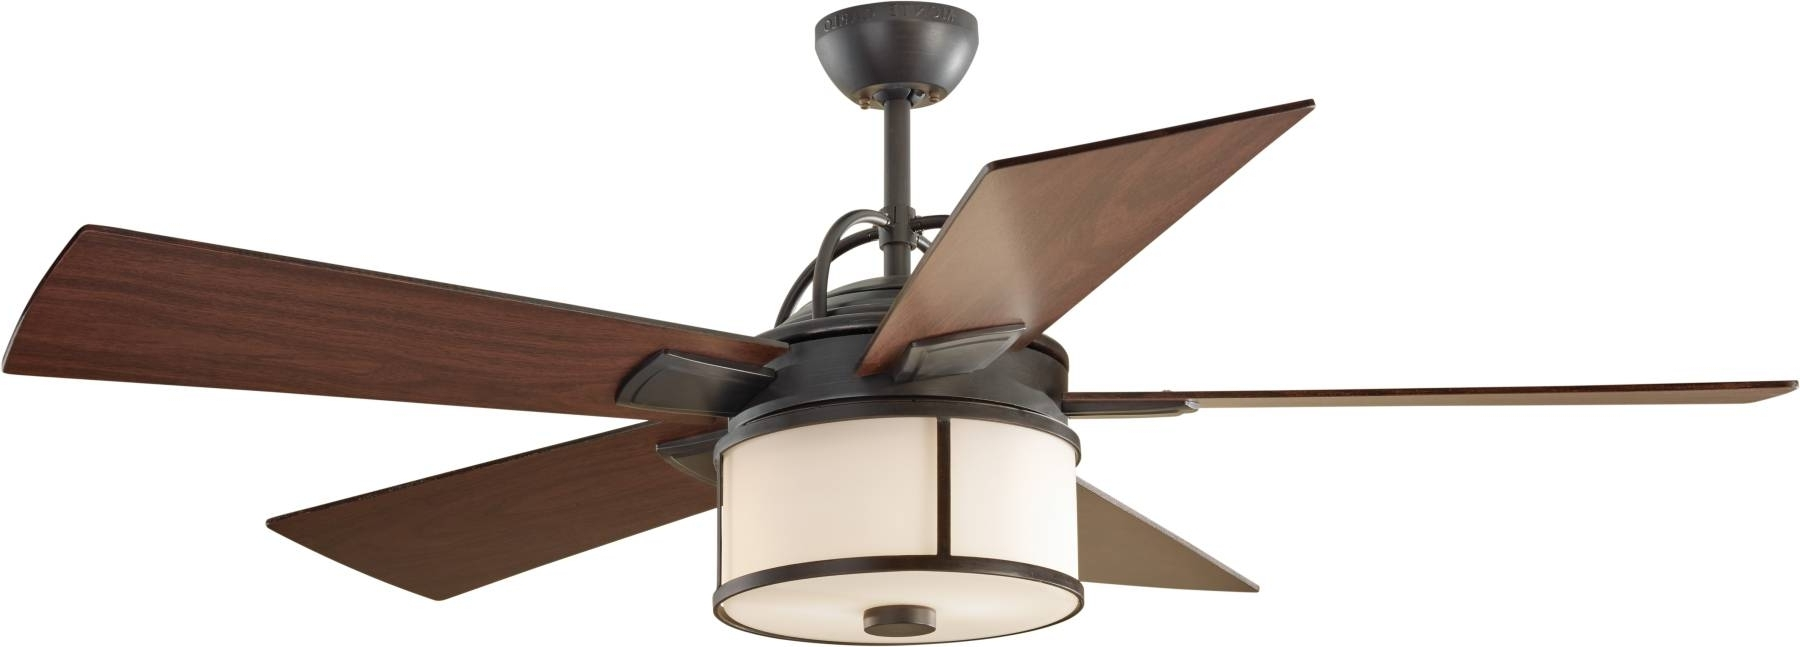 Outdoor Ceiling Fans With Light Globes With Regard To Most Recently Released Replacement Globes For Ceiling Fan – Pixball (View 15 of 20)